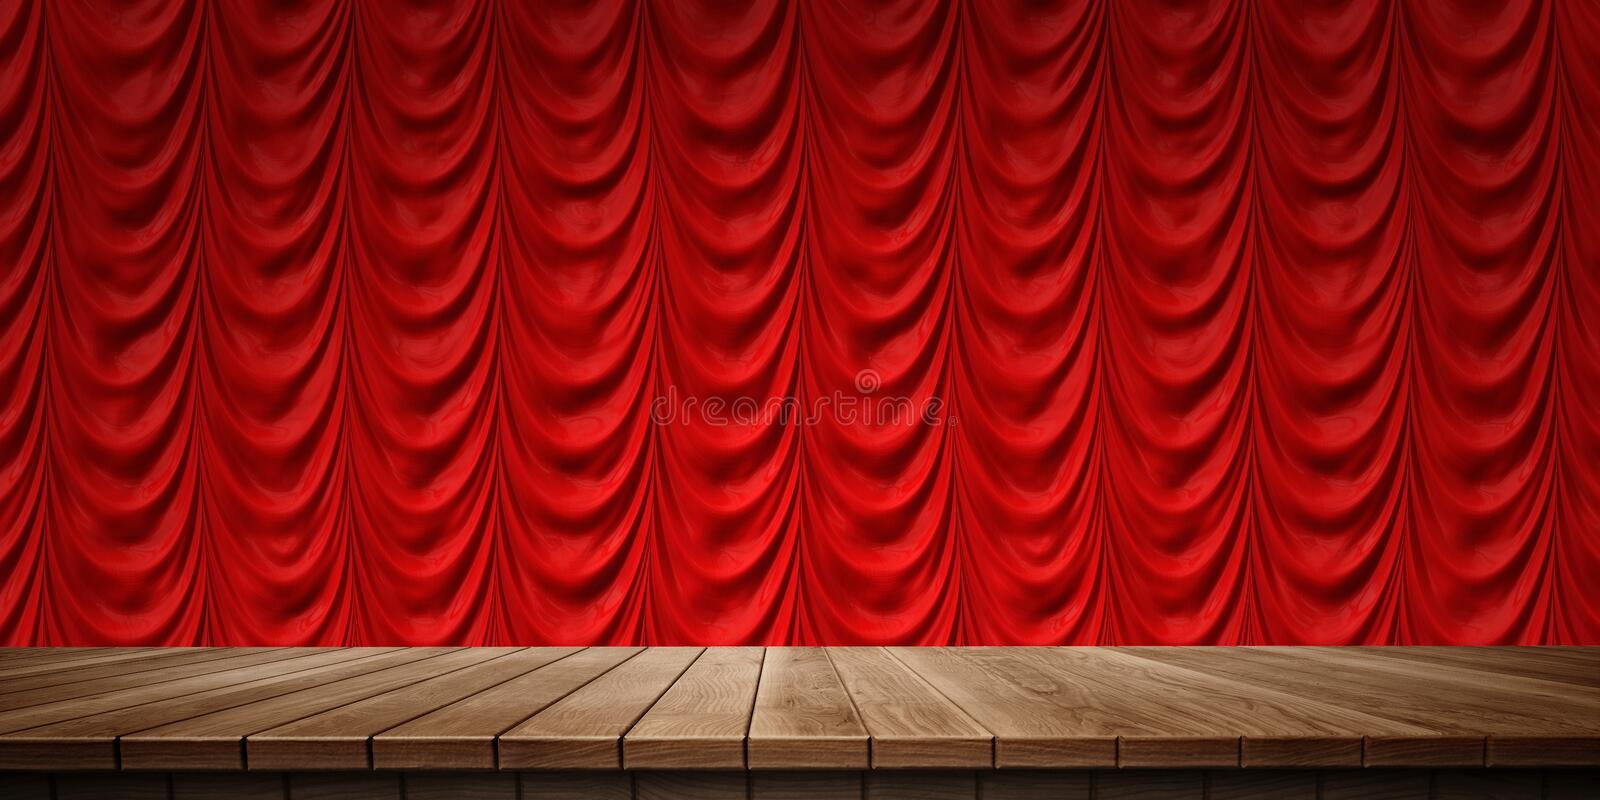 Closeup of colorful wooden platform and curtain background, front view. High-resolution 3D CG rendering illustration stock illustration